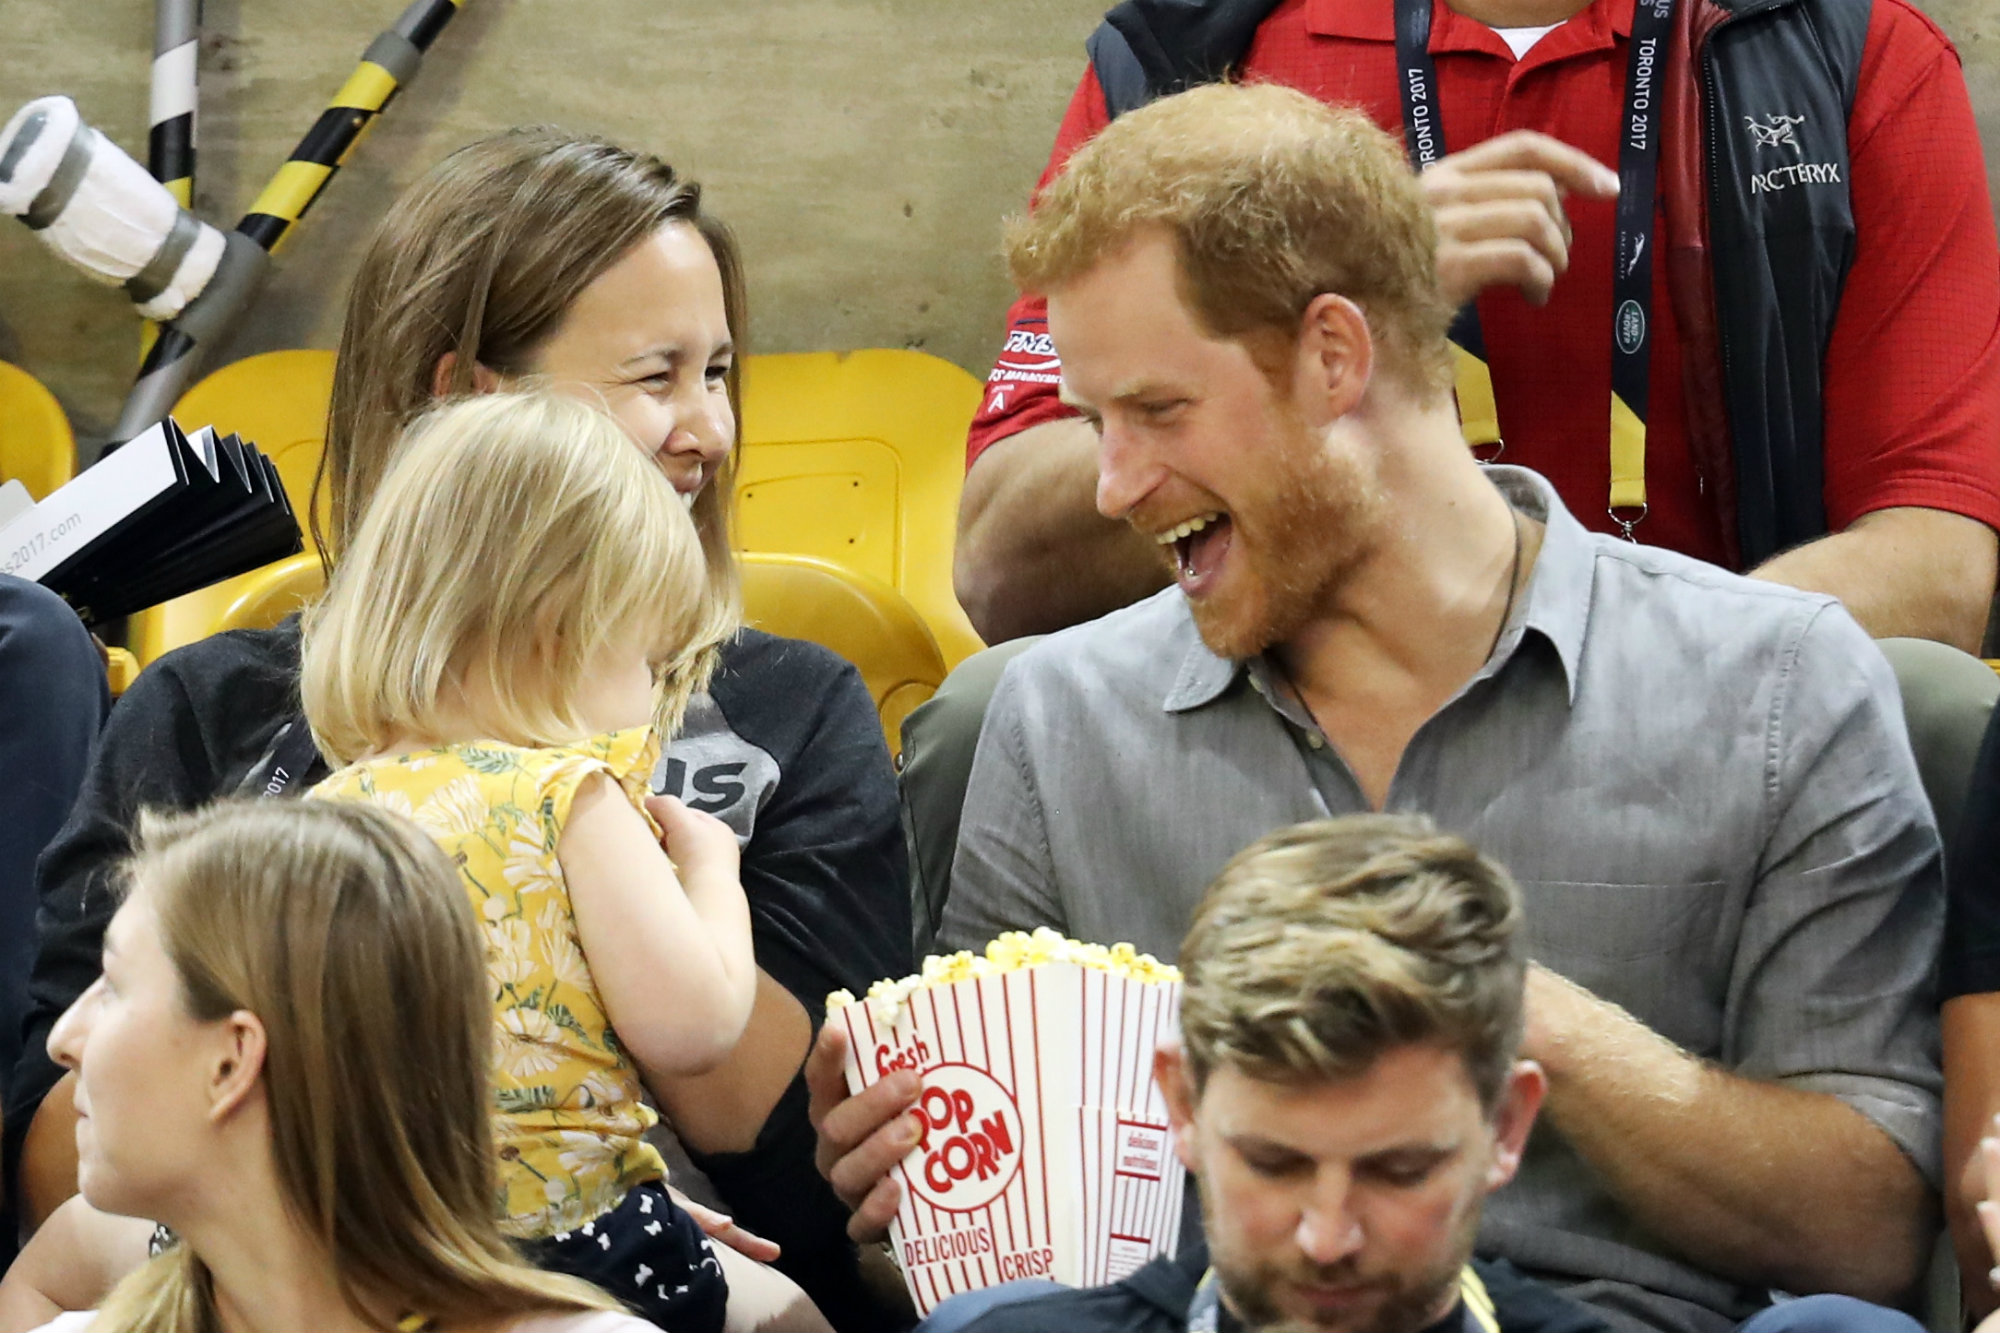 Little Girl Steals Prince Harry's Popcorn at Invictus Games, and It's the Cutest Thing Ever